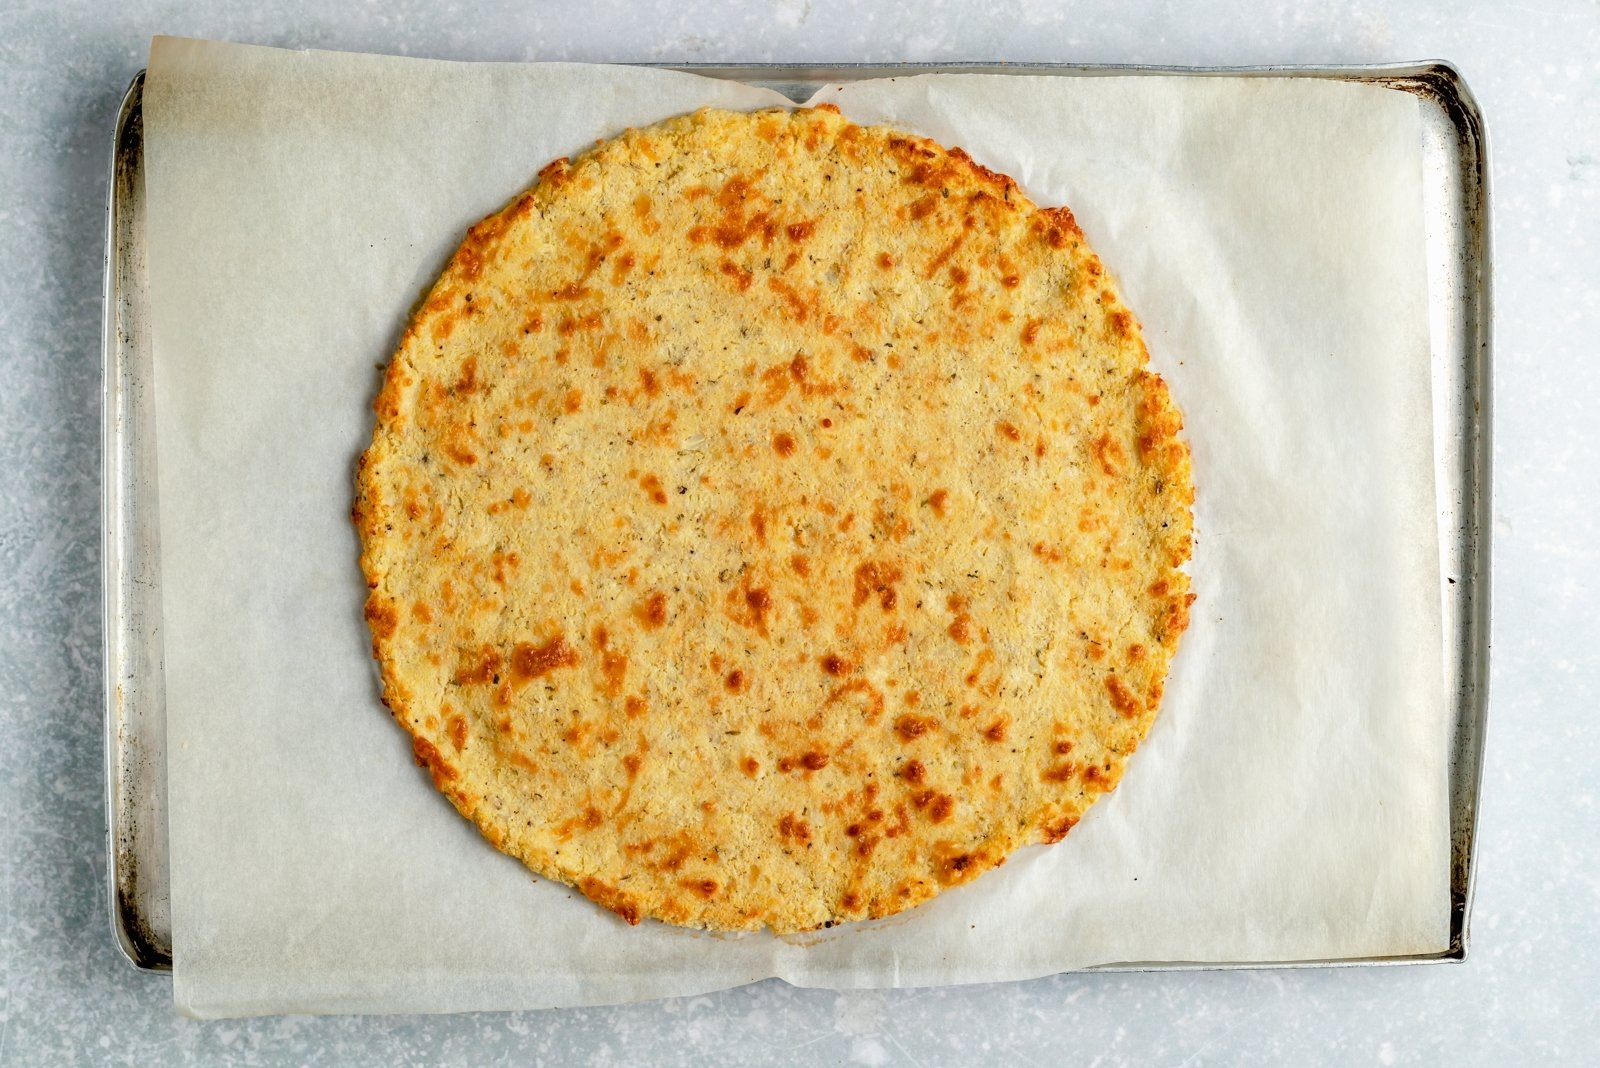 baked cauliflower pizza crust on a baking sheet